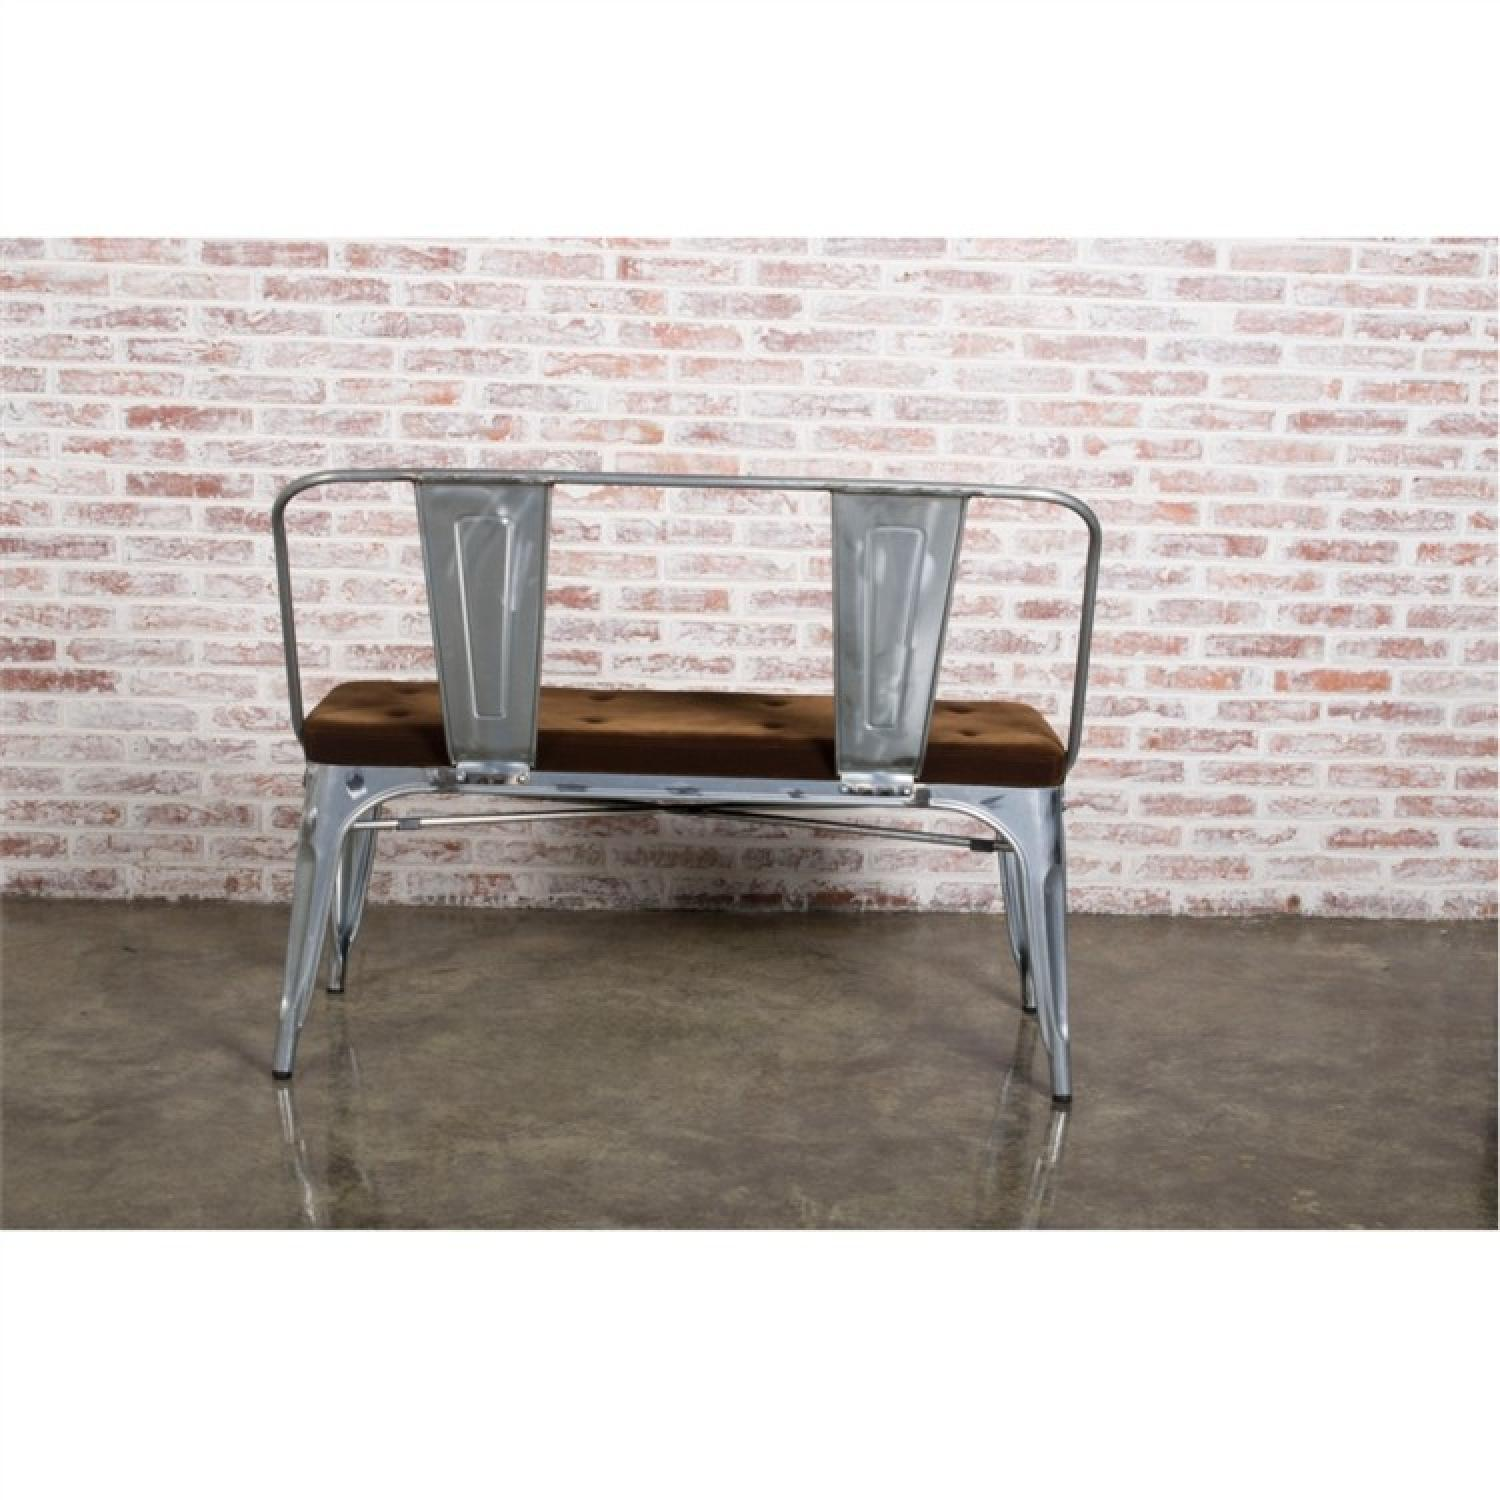 Double Seat Bench In Galvanized Metal Frame w/ Brown Fabric Cushion - image-3